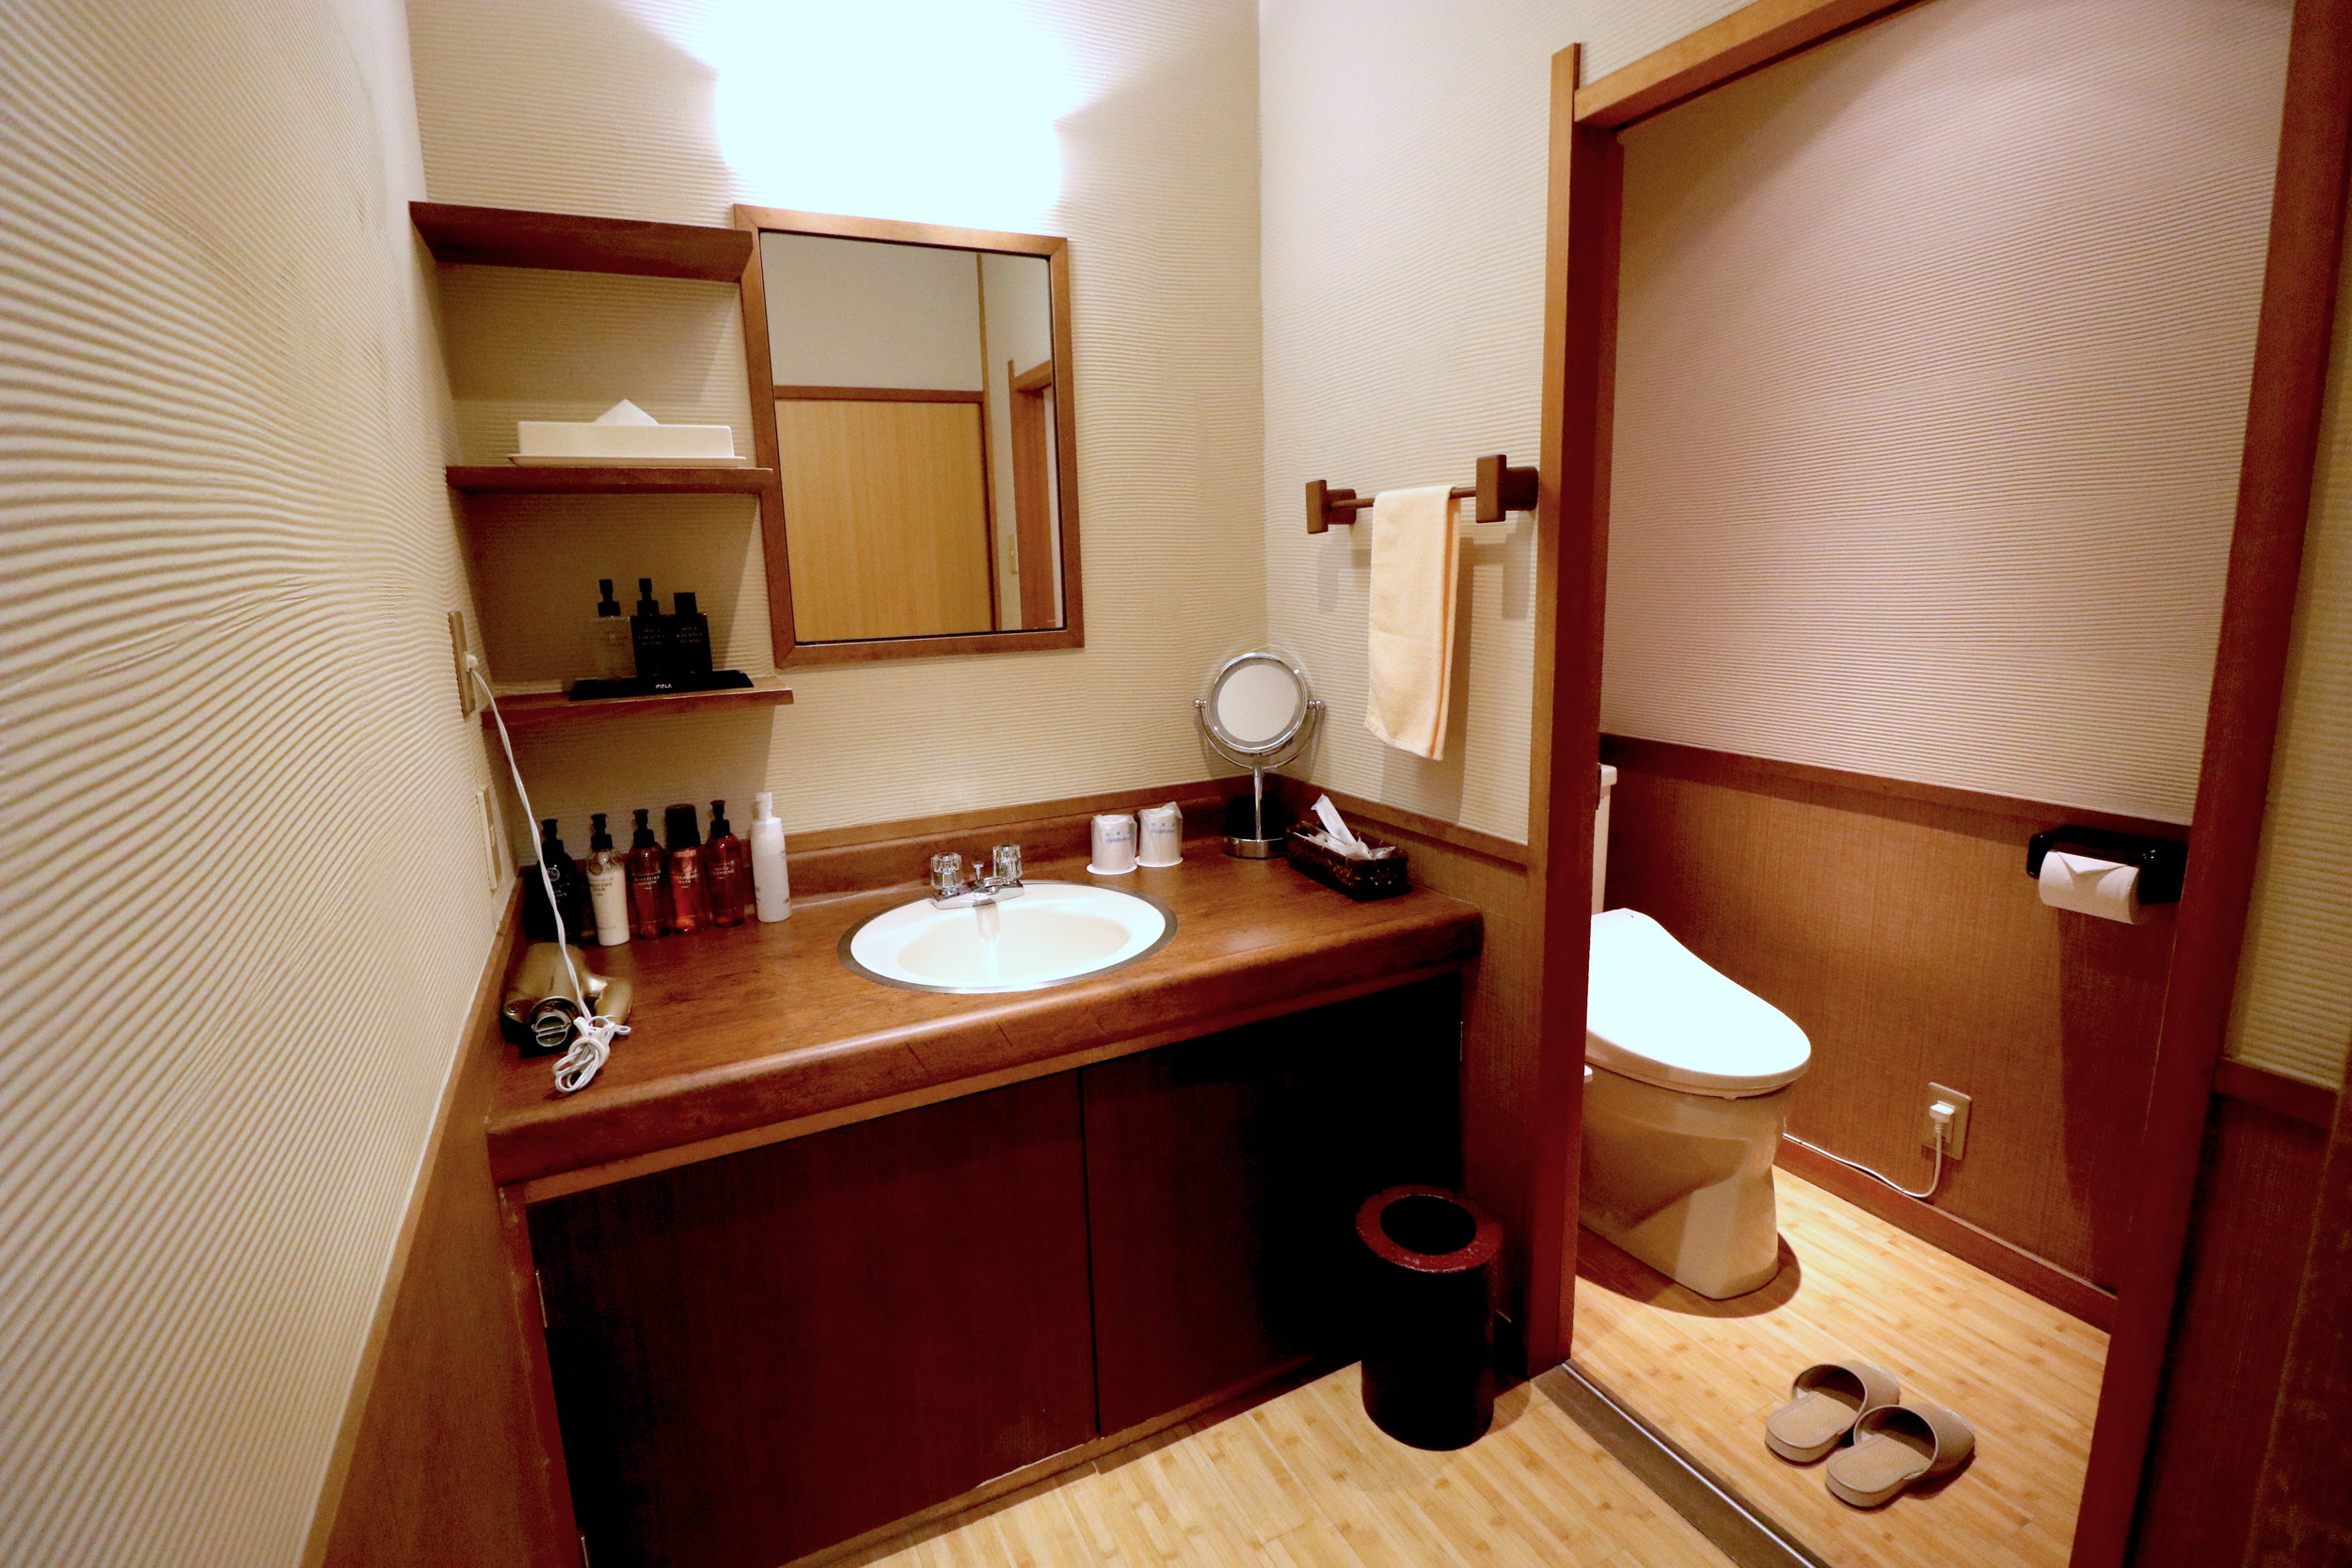 washing room and toilet